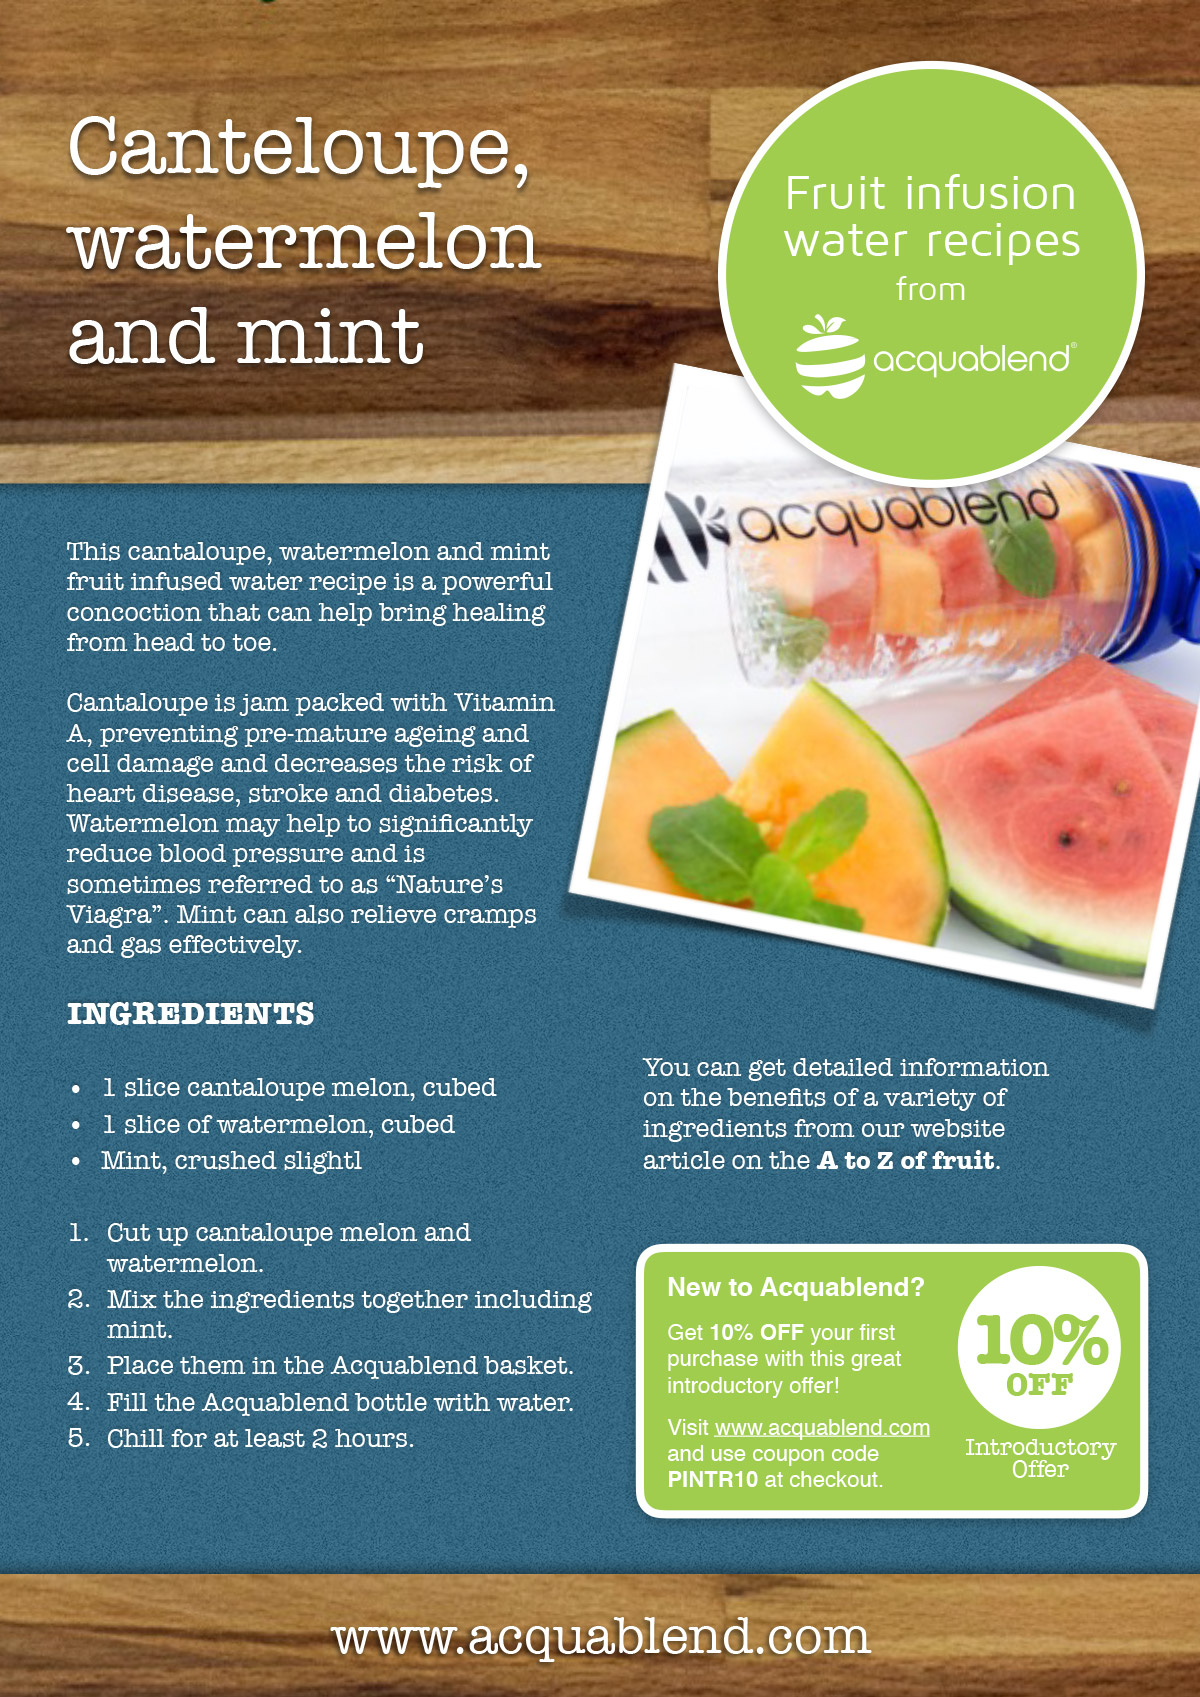 Cantaloupe, watermelon and mint fruit infused water recipe.